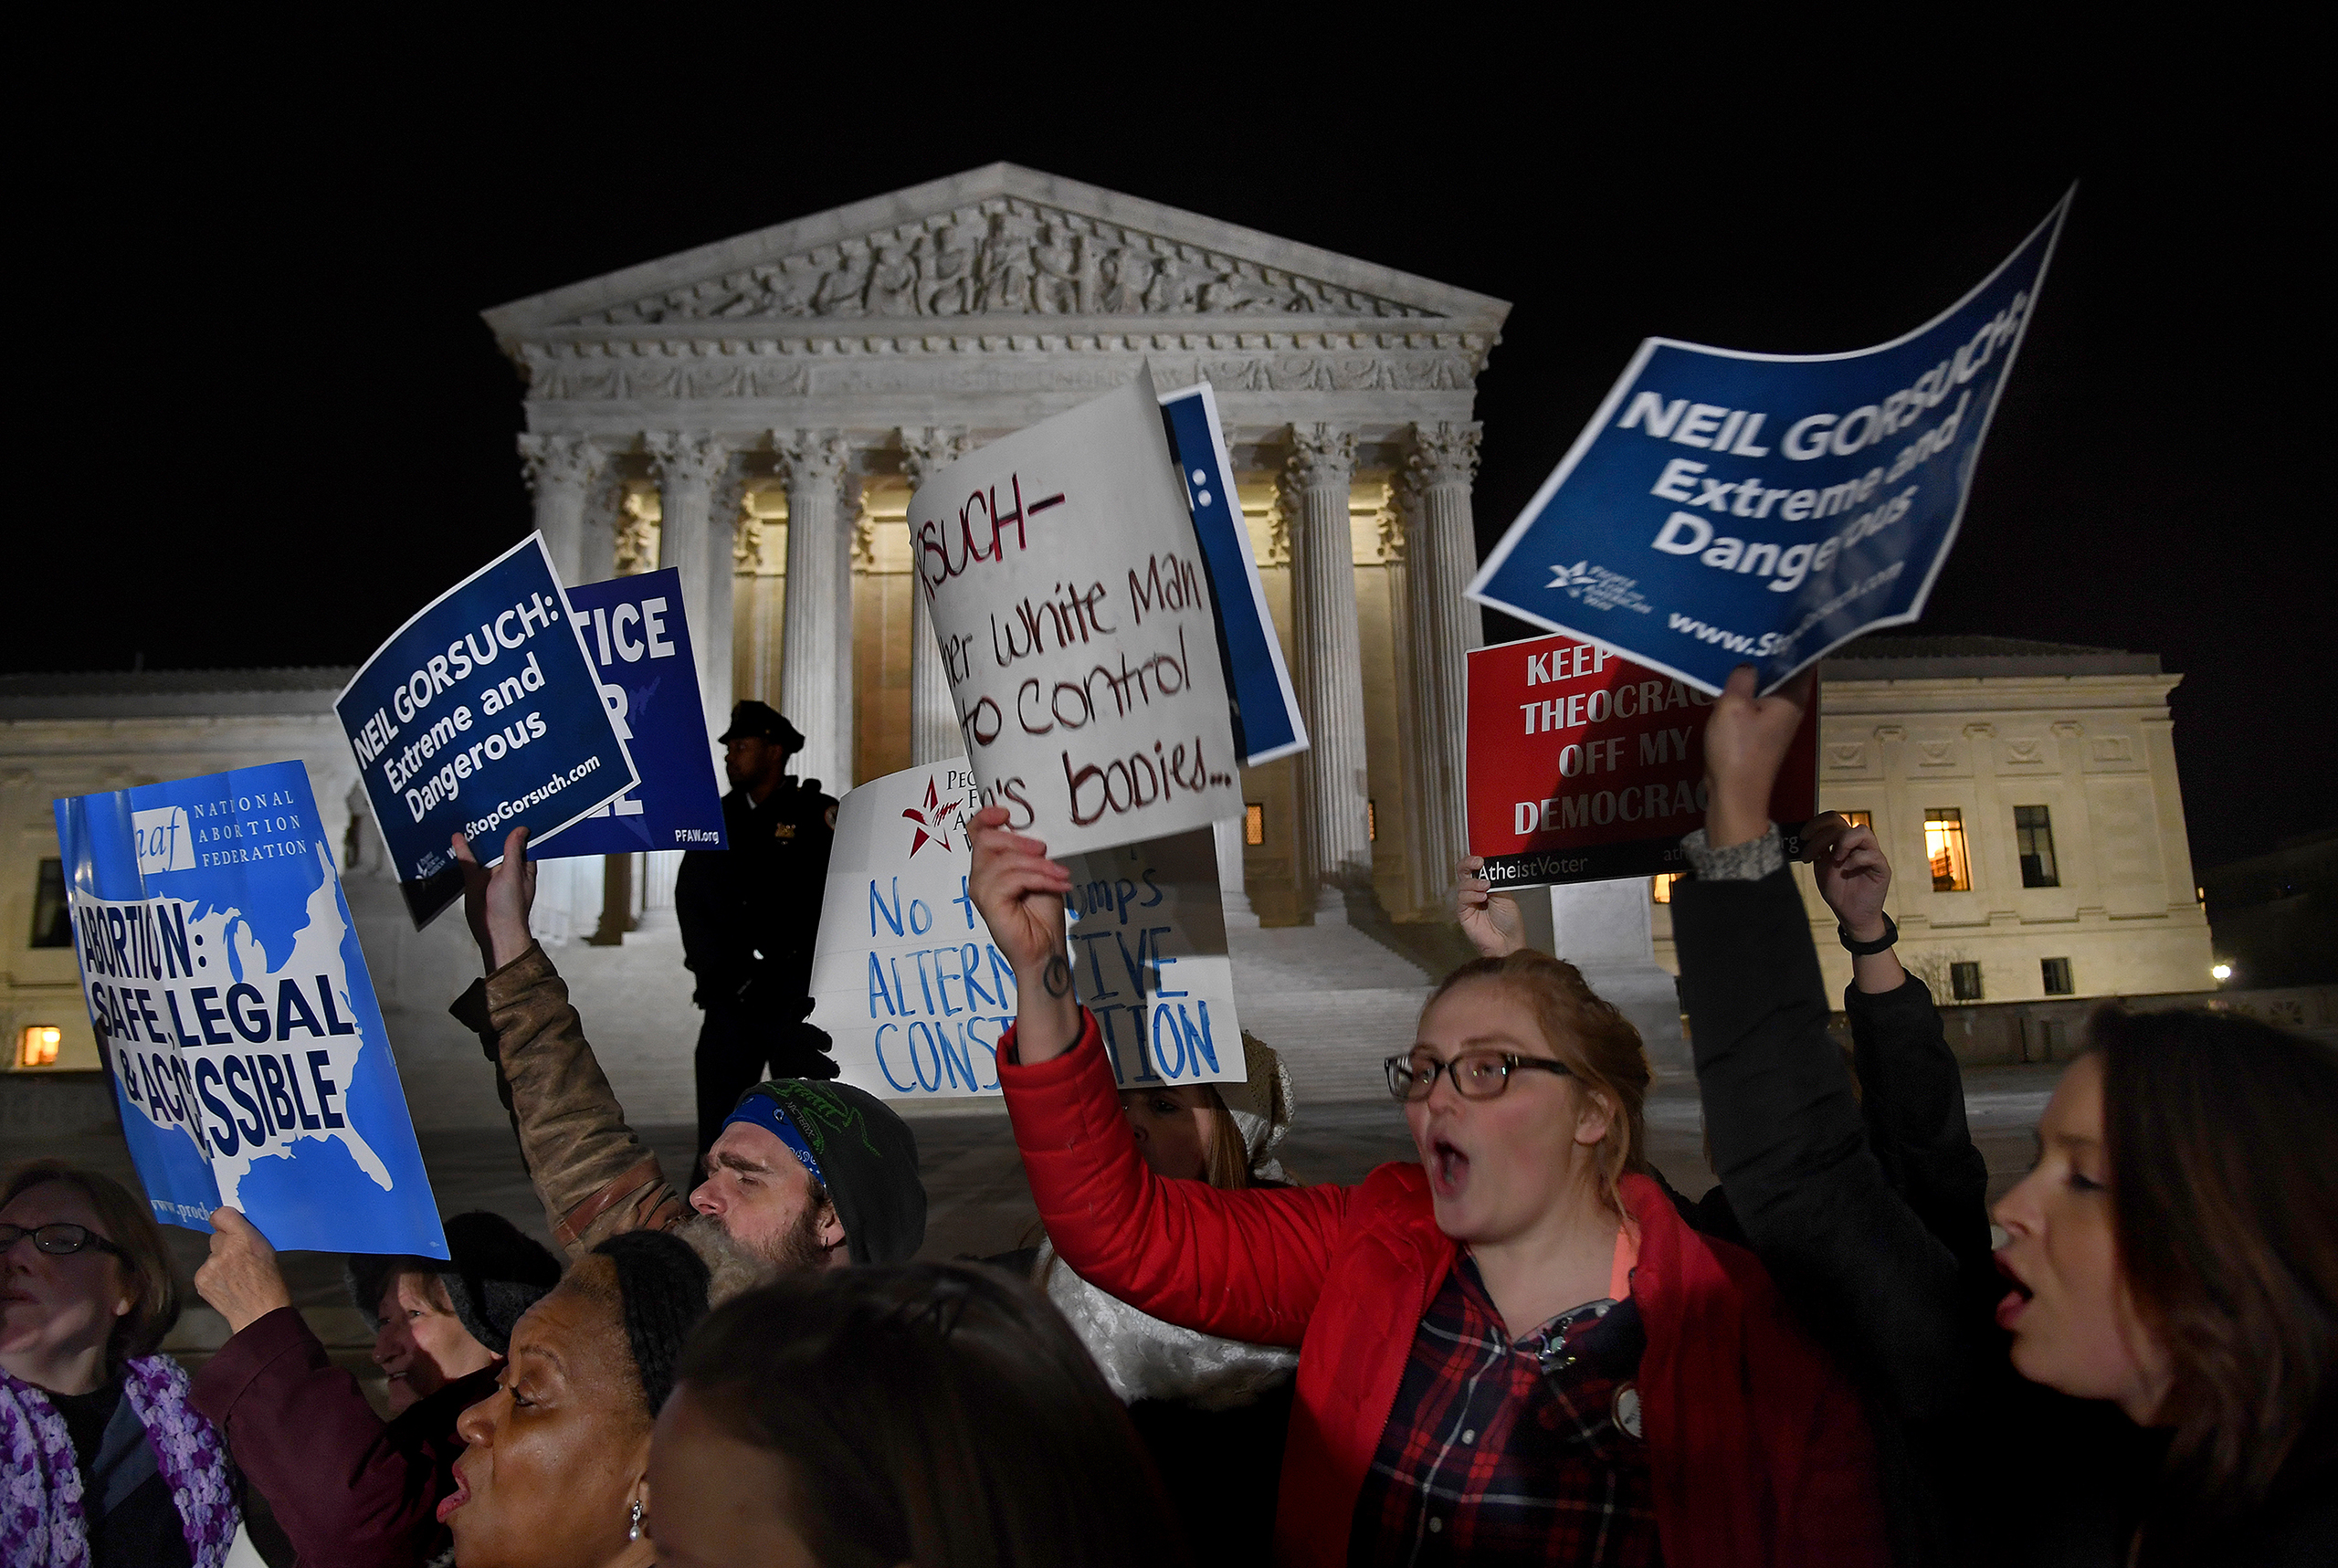 Reaction to President  Trump's Gorsuch nomination announcement was swift on the steps of the Supreme Court by both sides of the abortion issue, Washington, D.C., Jan. 31, 2017.